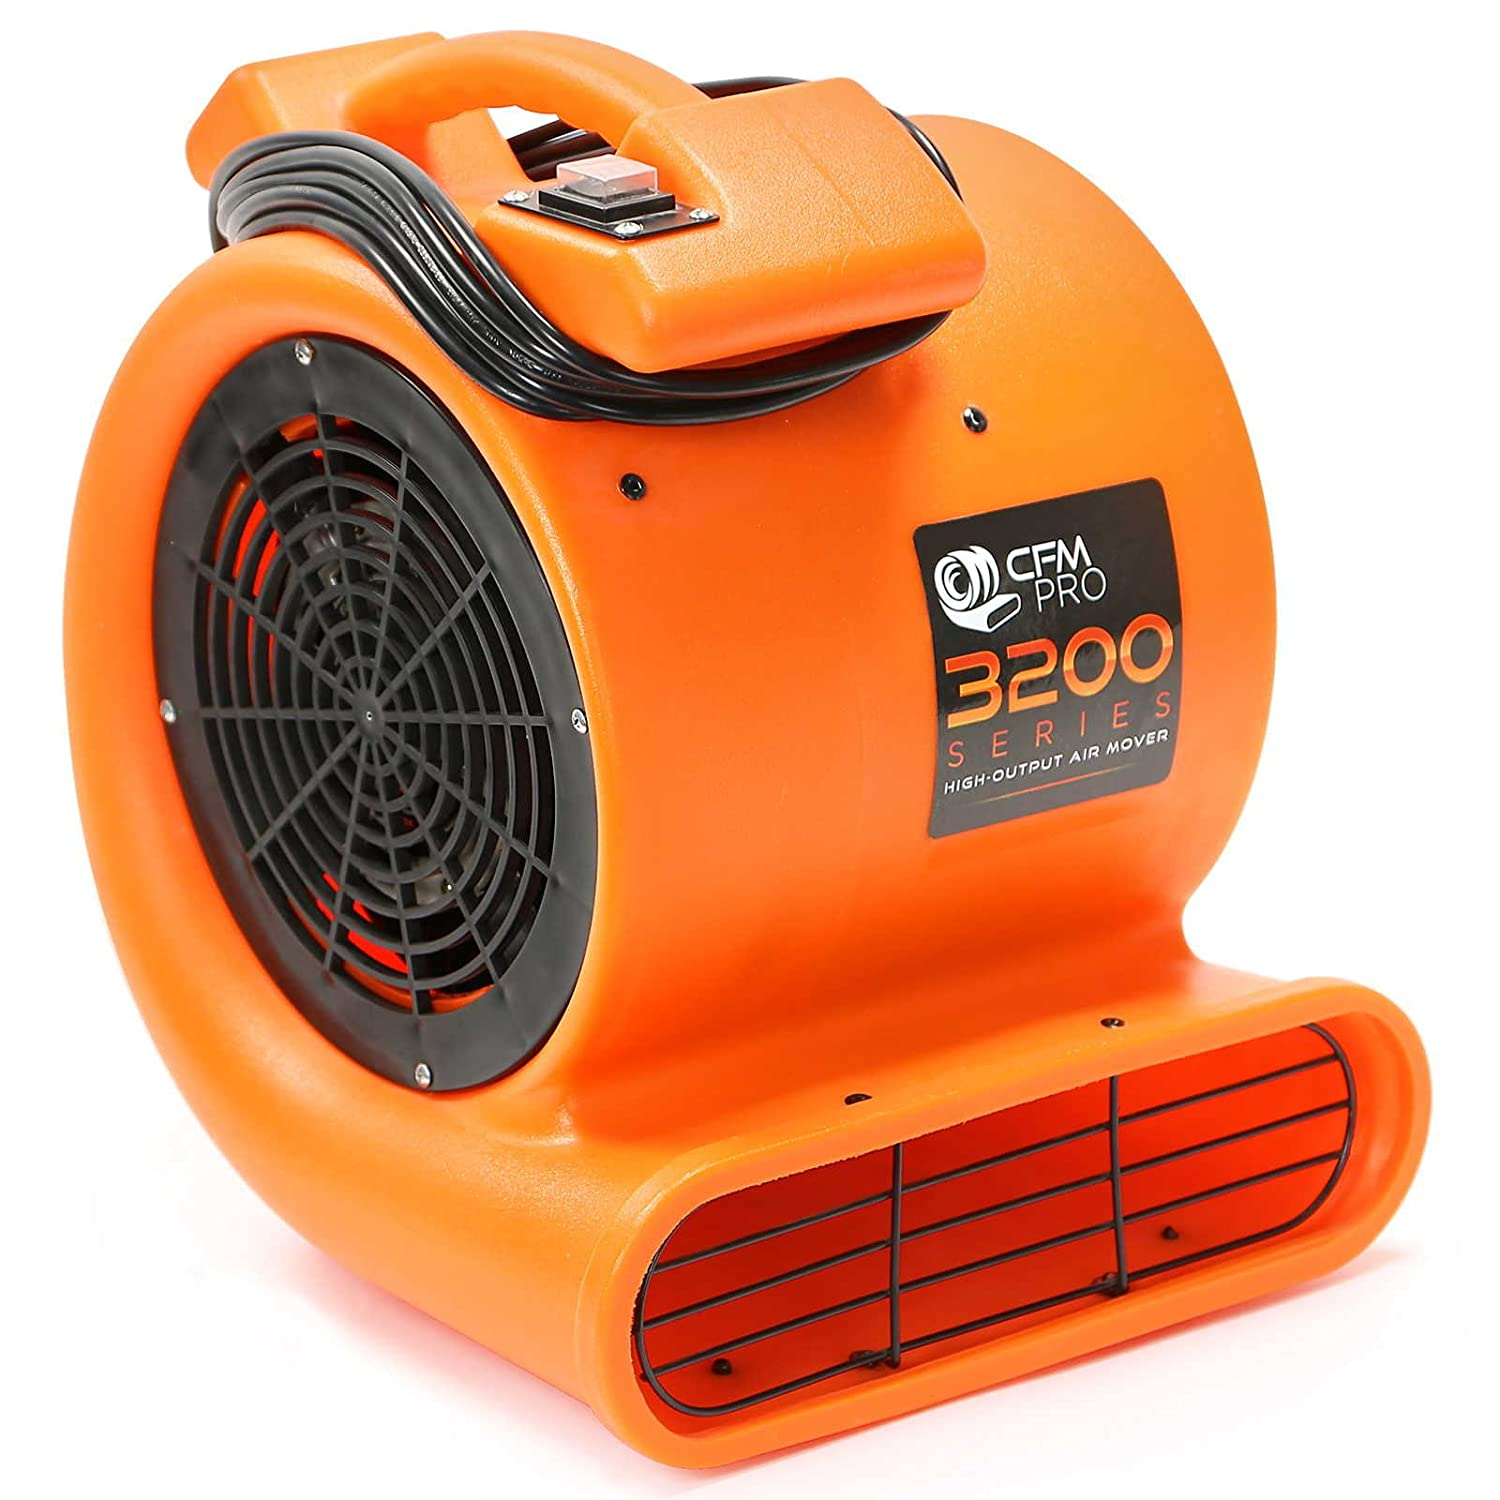 CFM Pro Air Mover Carpet Floor Dryer 2 Speed 1 2 HP Blower Fan Orange Industrial Water Flood Damage Restoration